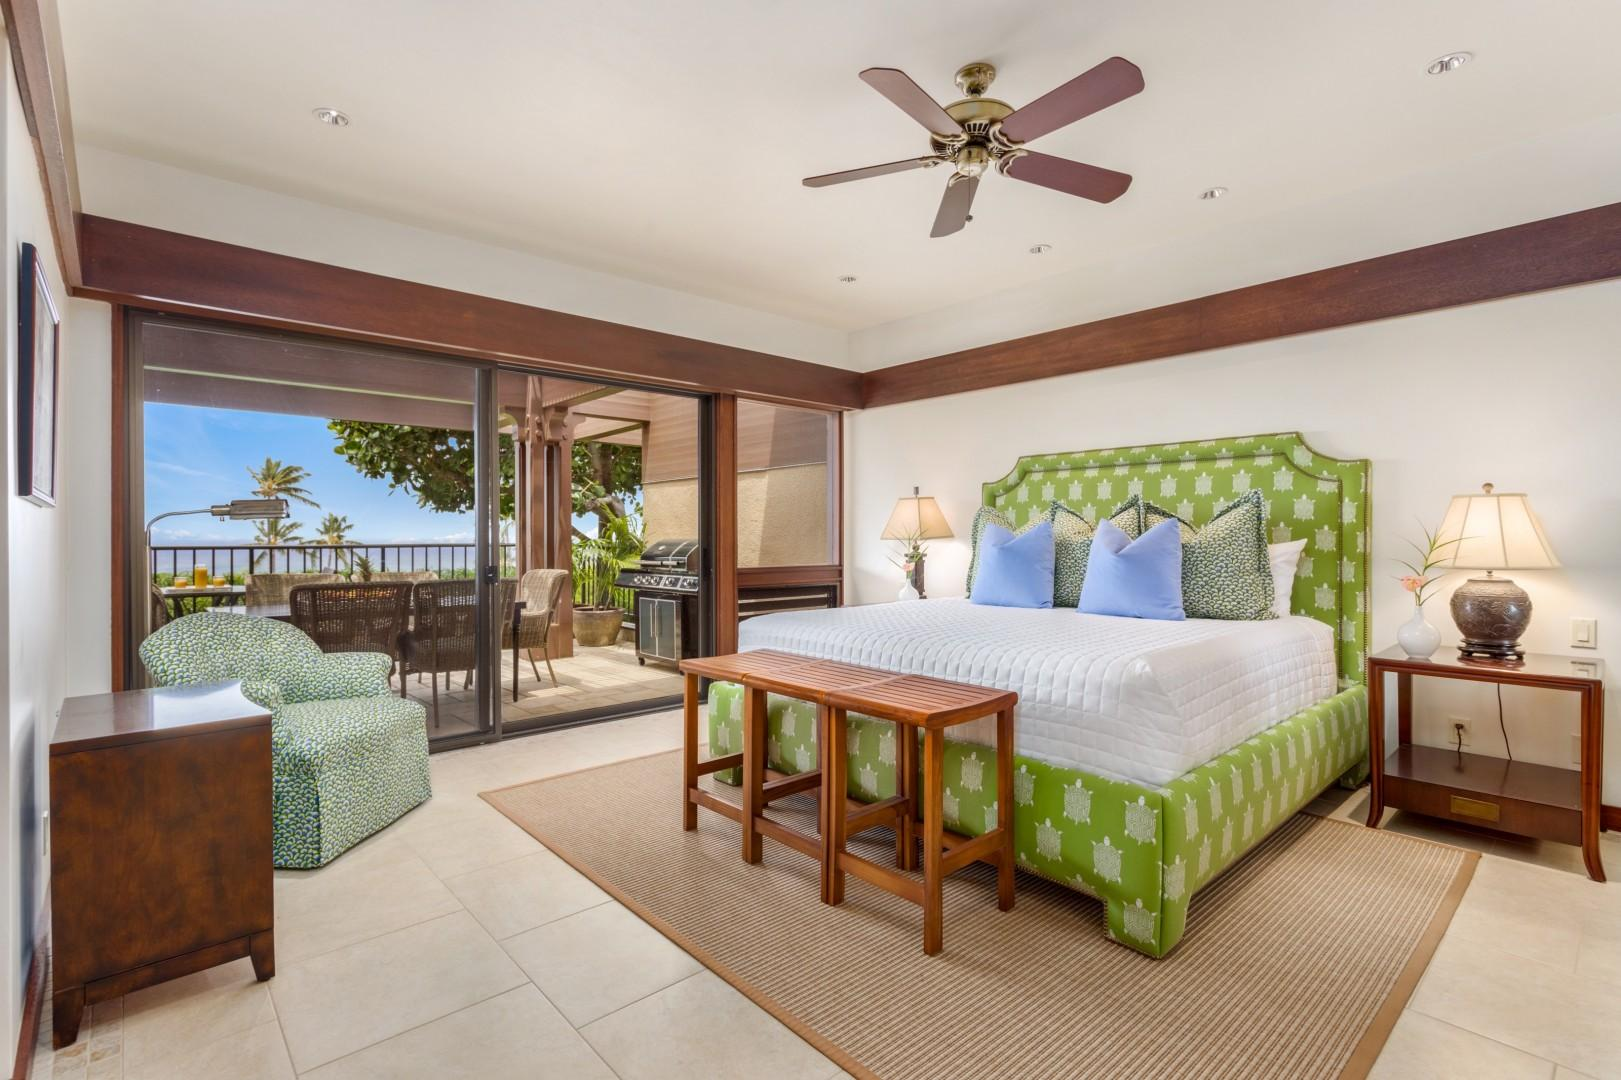 Second bedroom, with king bed, flat-screen TV, sliding glass doors to upper lanai, and ocean views.